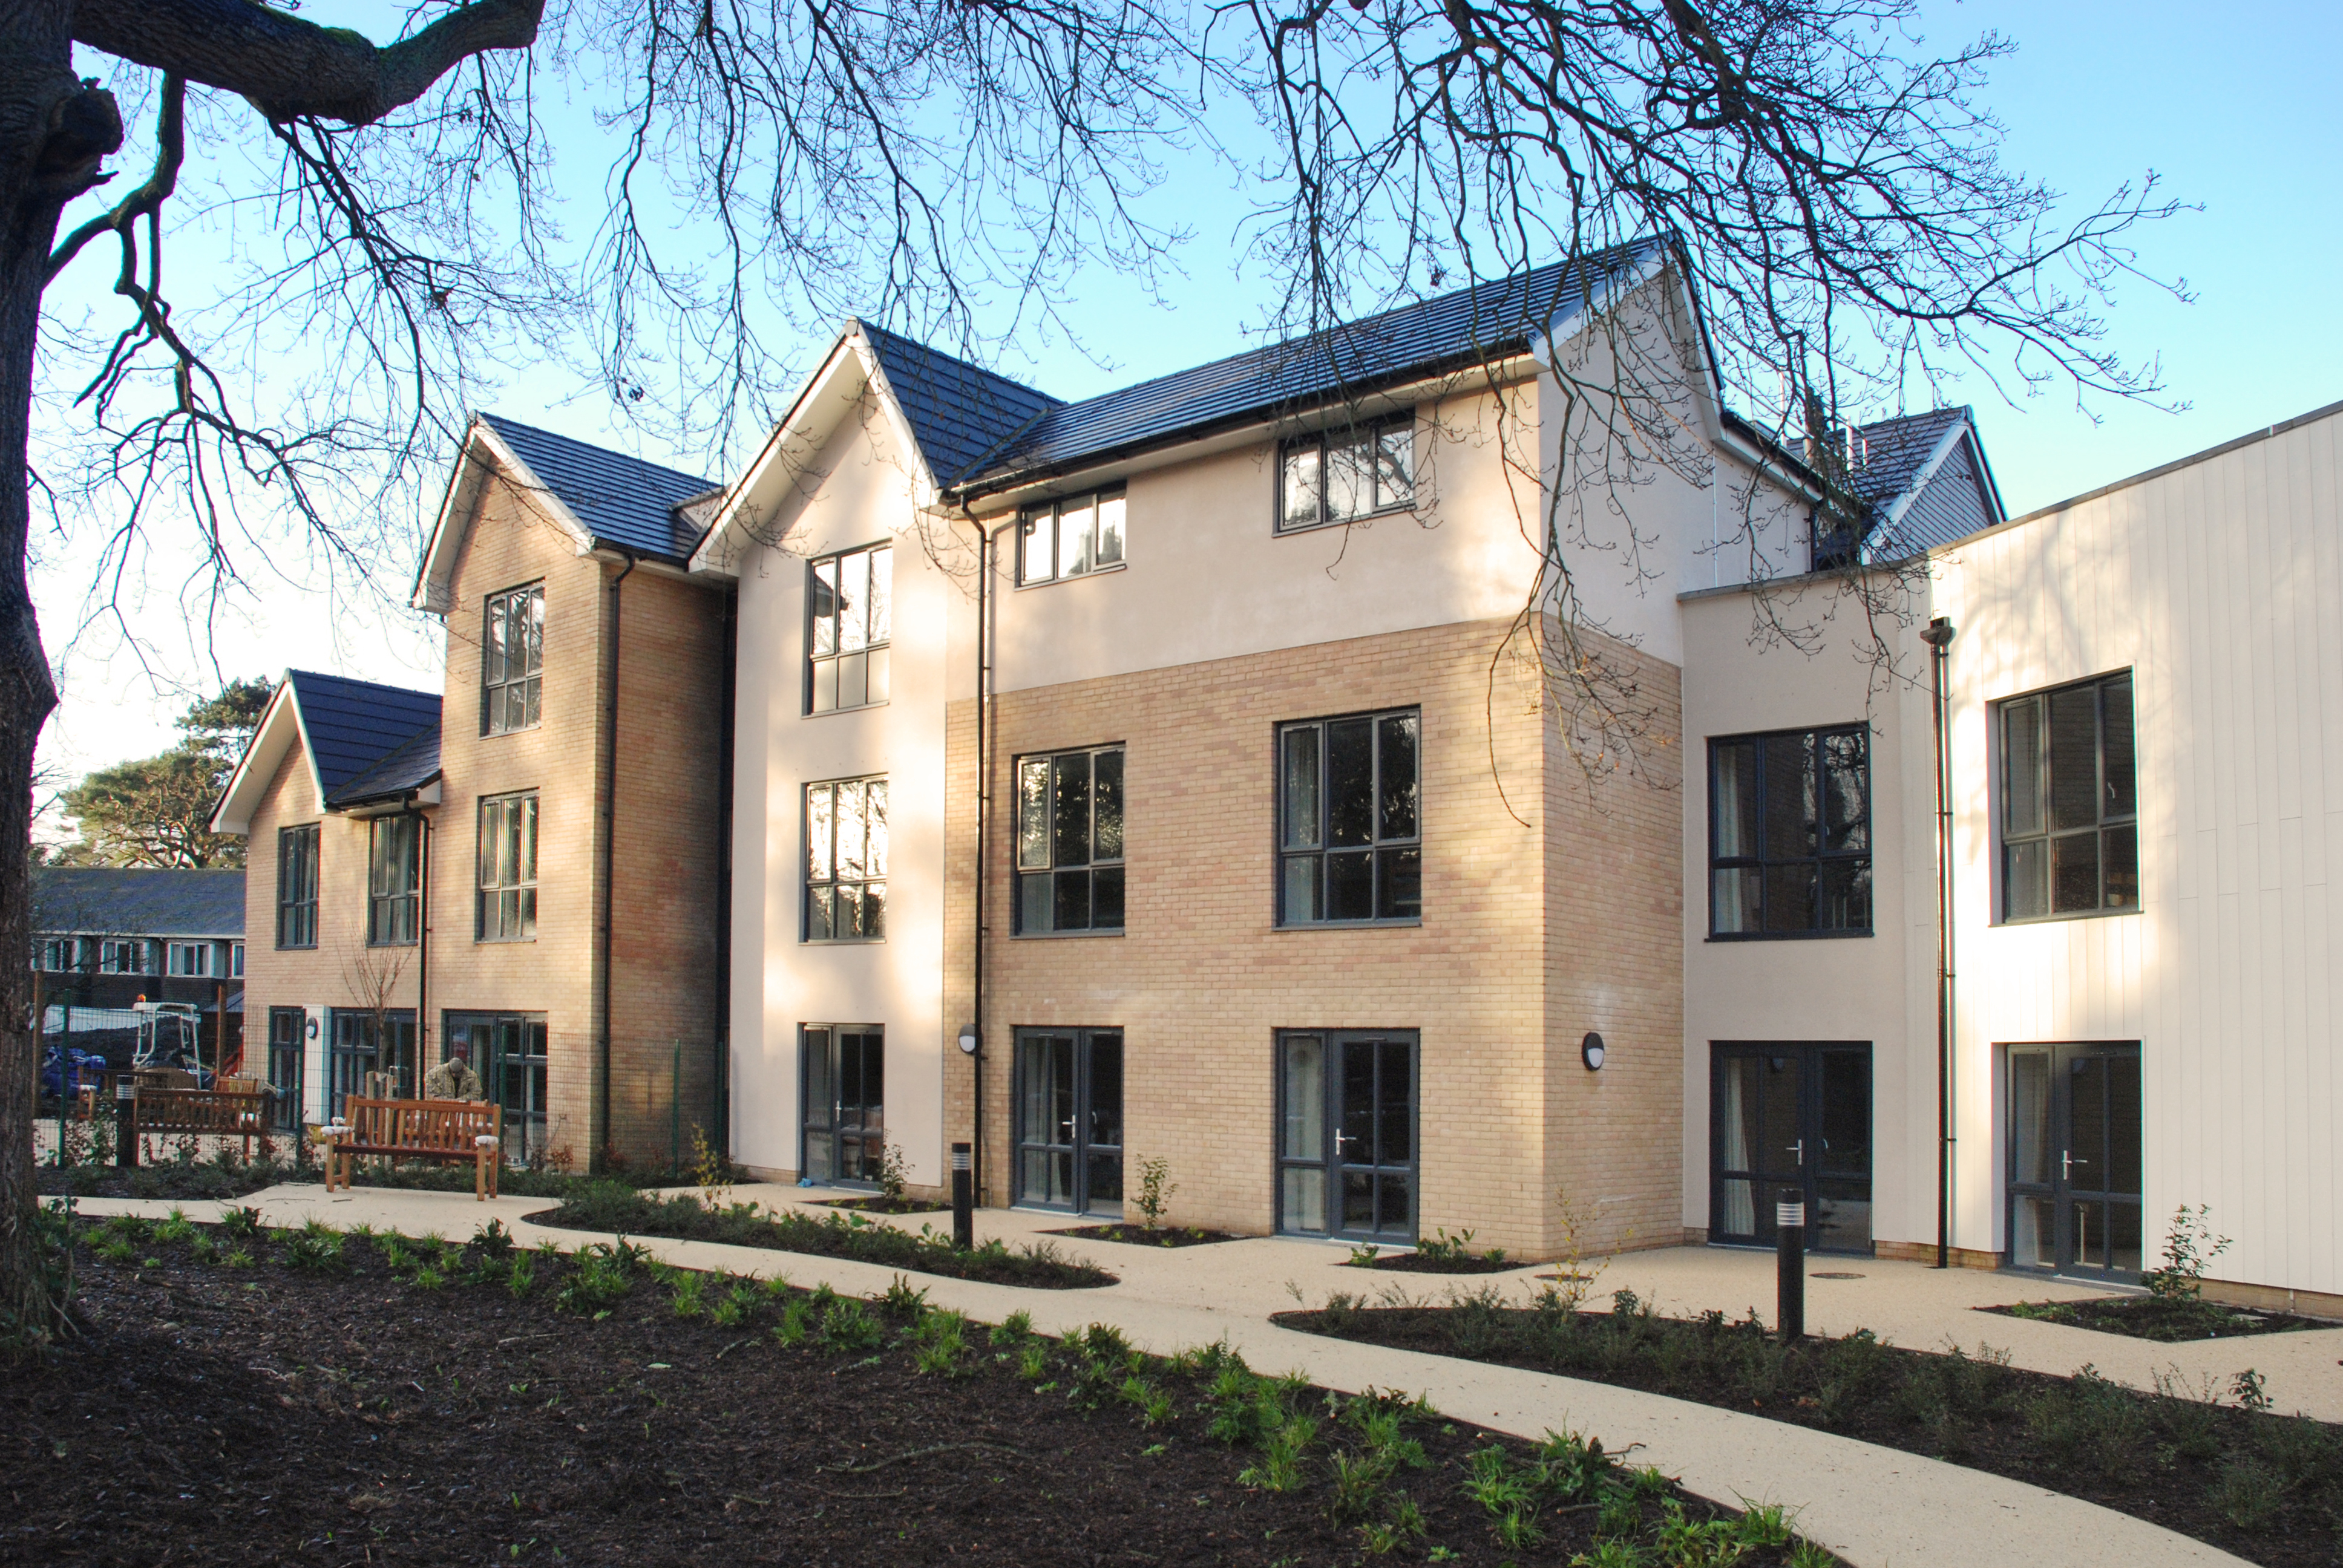 New dementia wing set for official opening